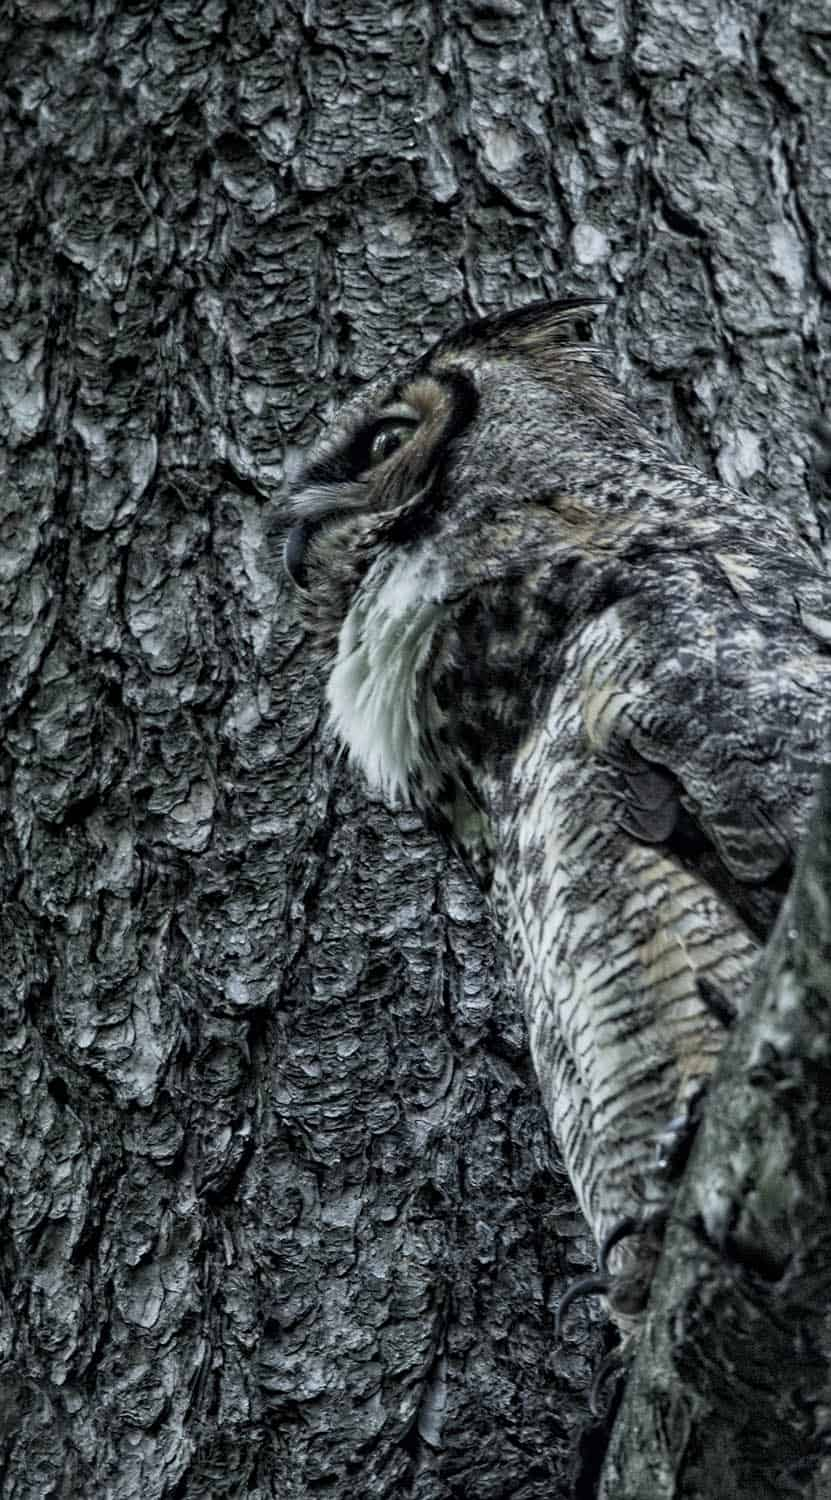 Great Horned Owl in Camo